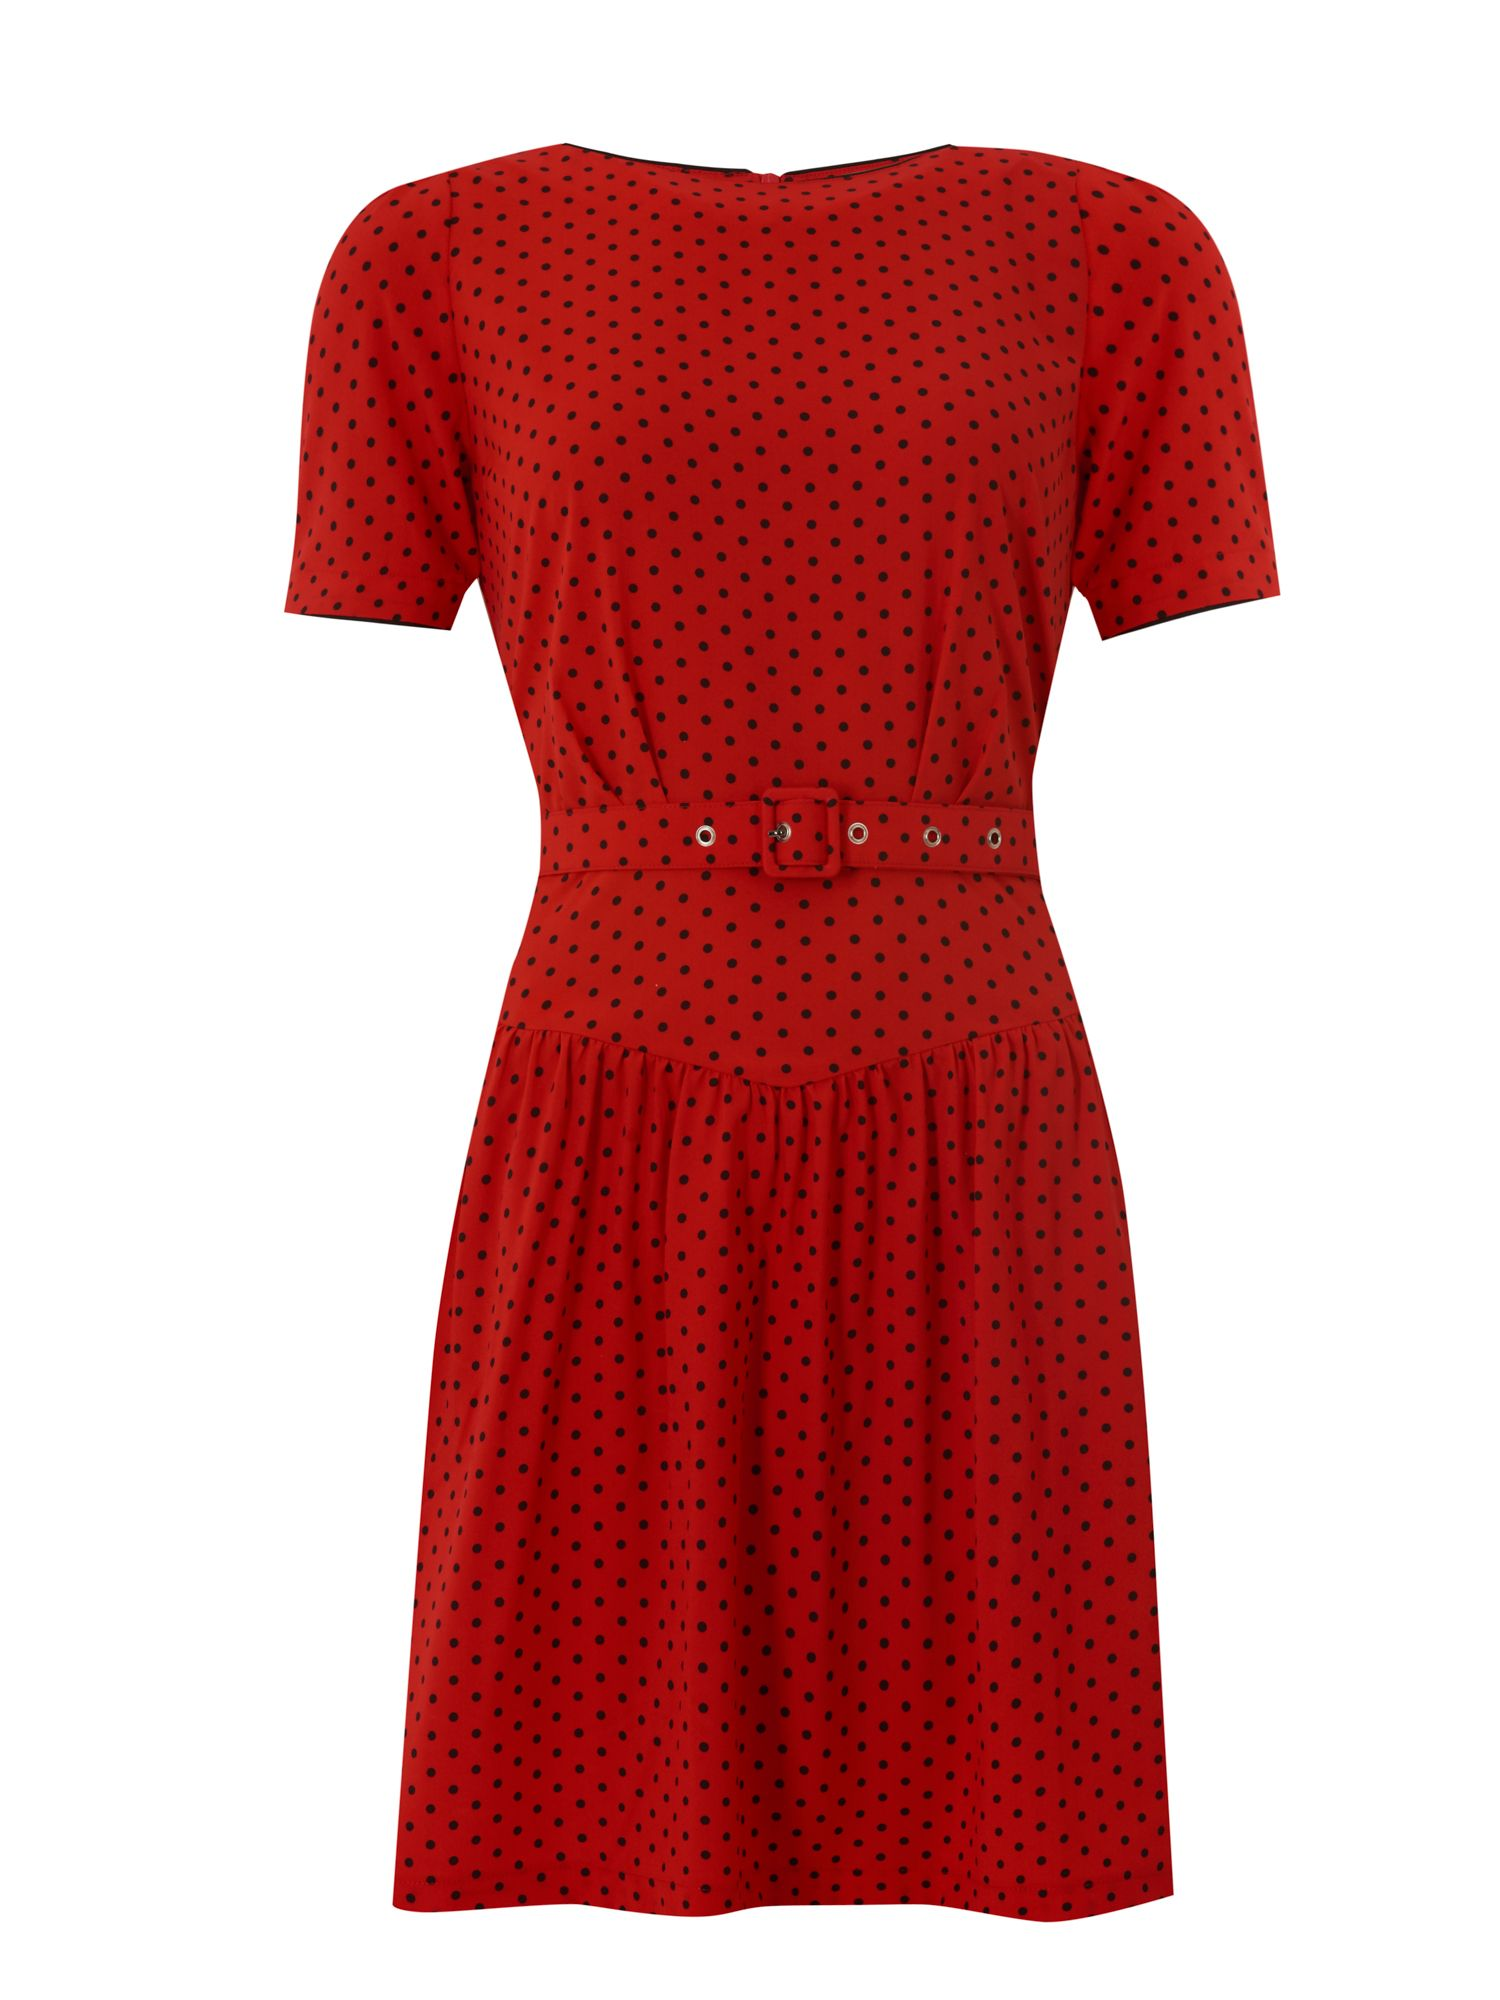 1940s Dresses and Clothing UK Trollied Dolly Drop Dead Gorgeous Dress £27.50 AT vintagedancer.com